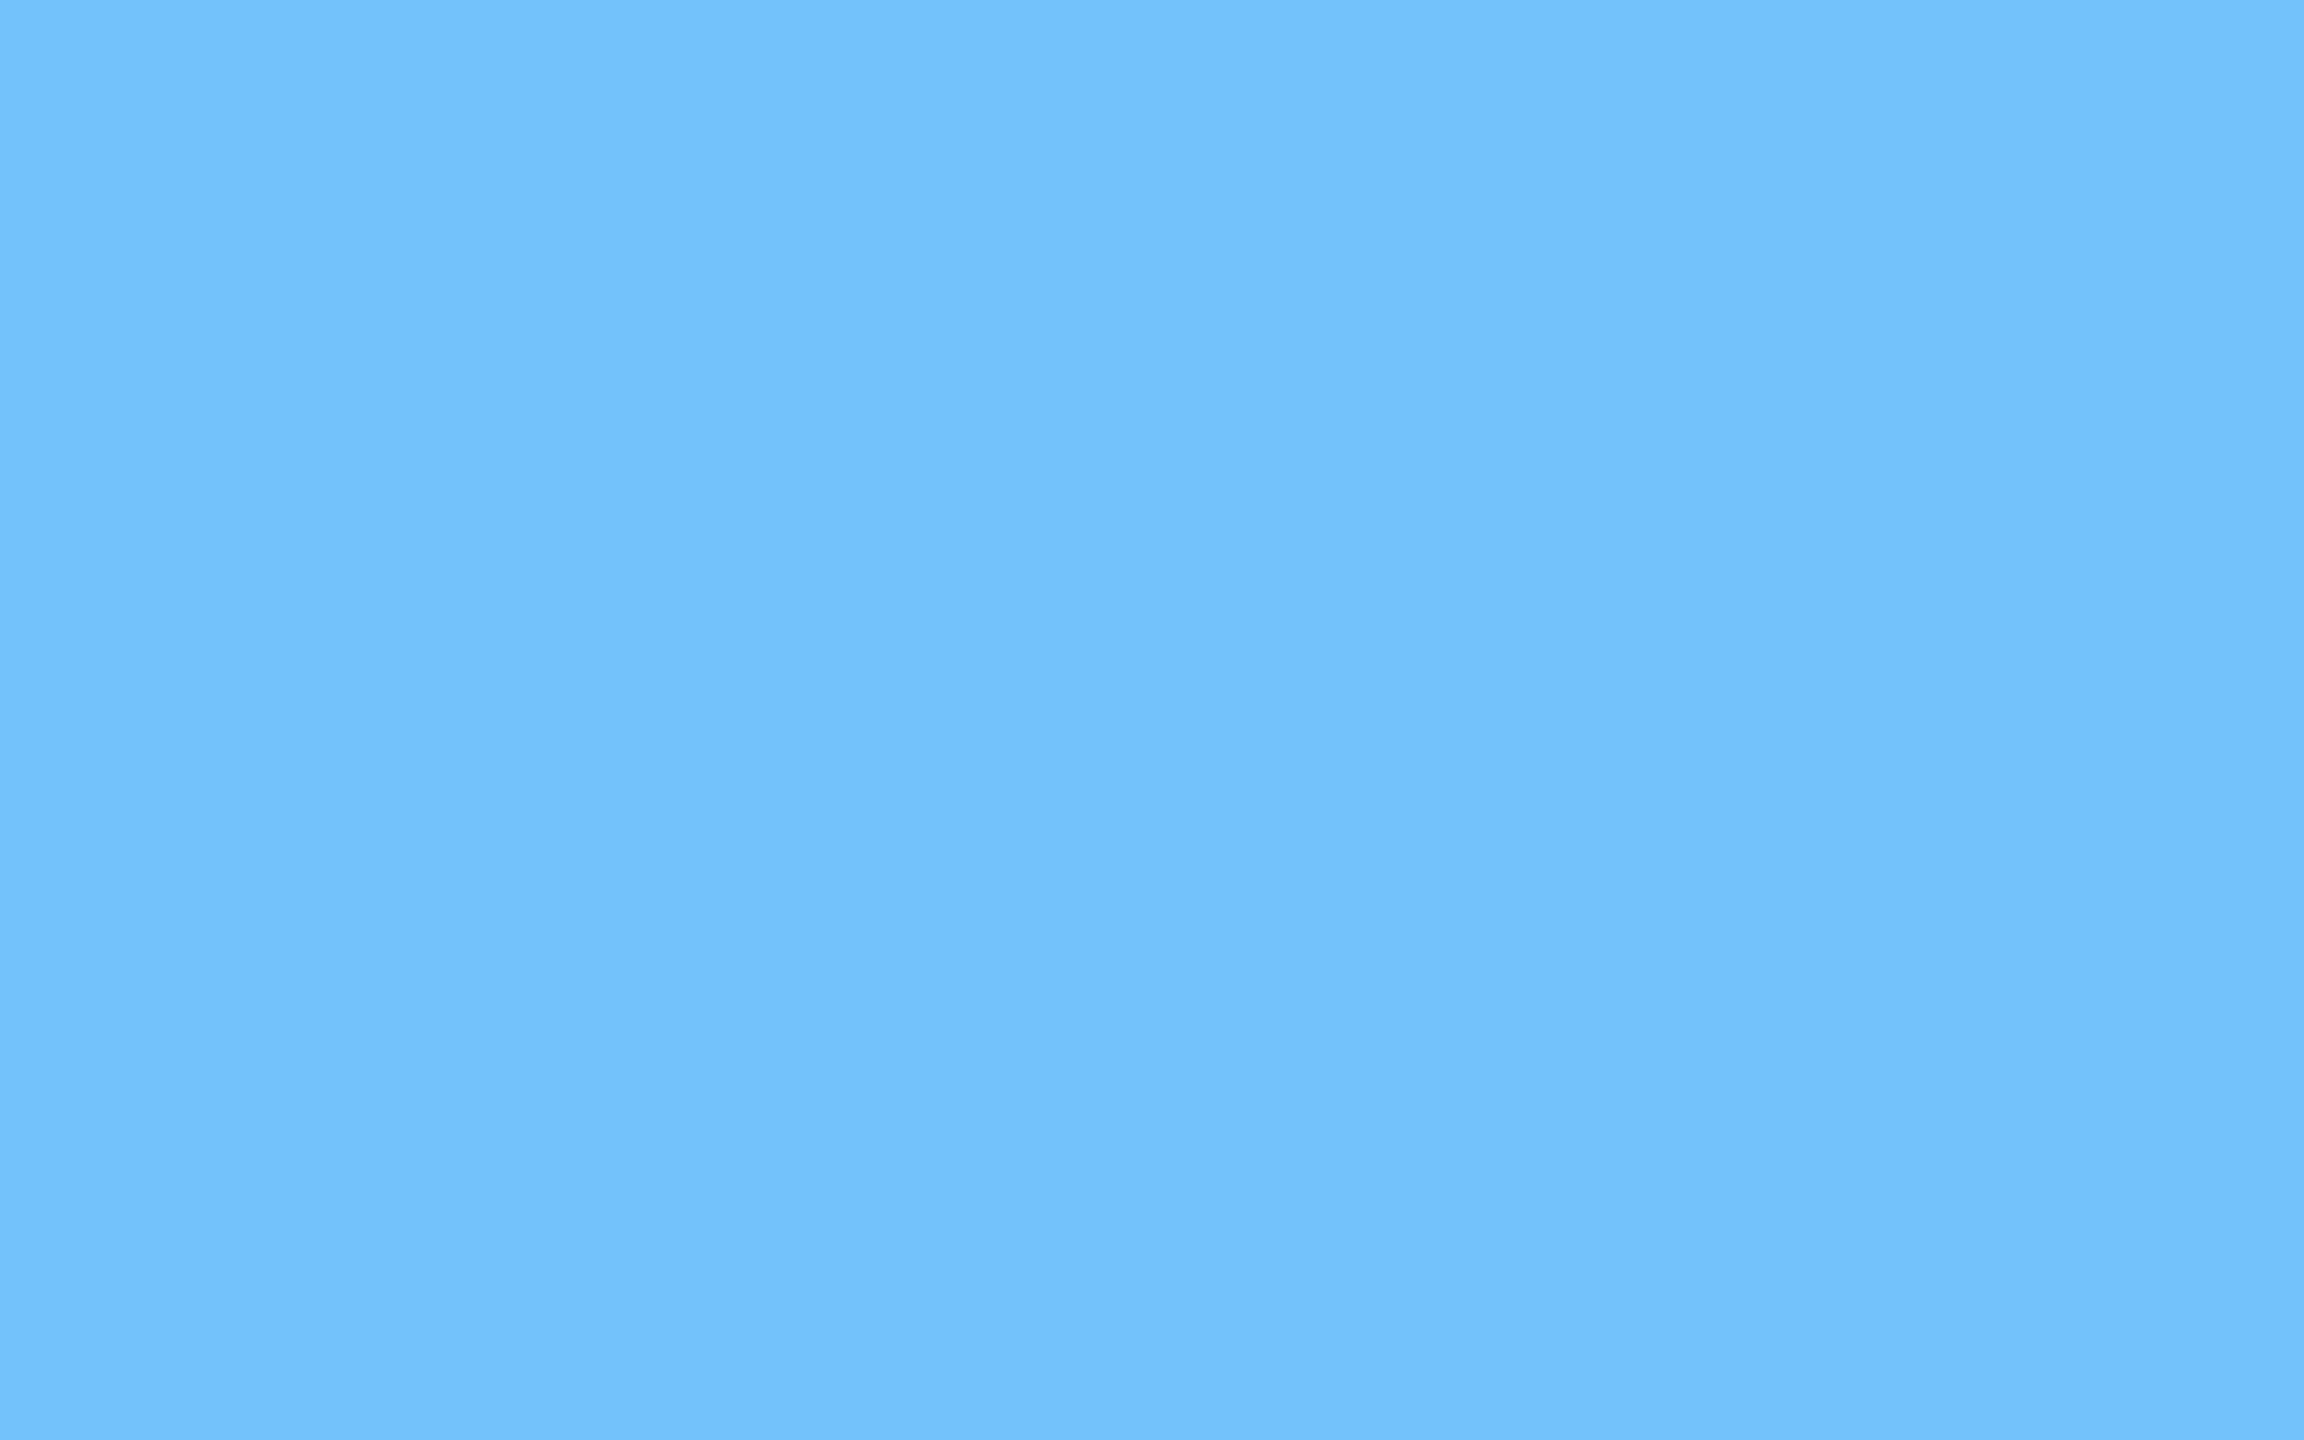 2304x1440 Maya Blue Solid Color Background